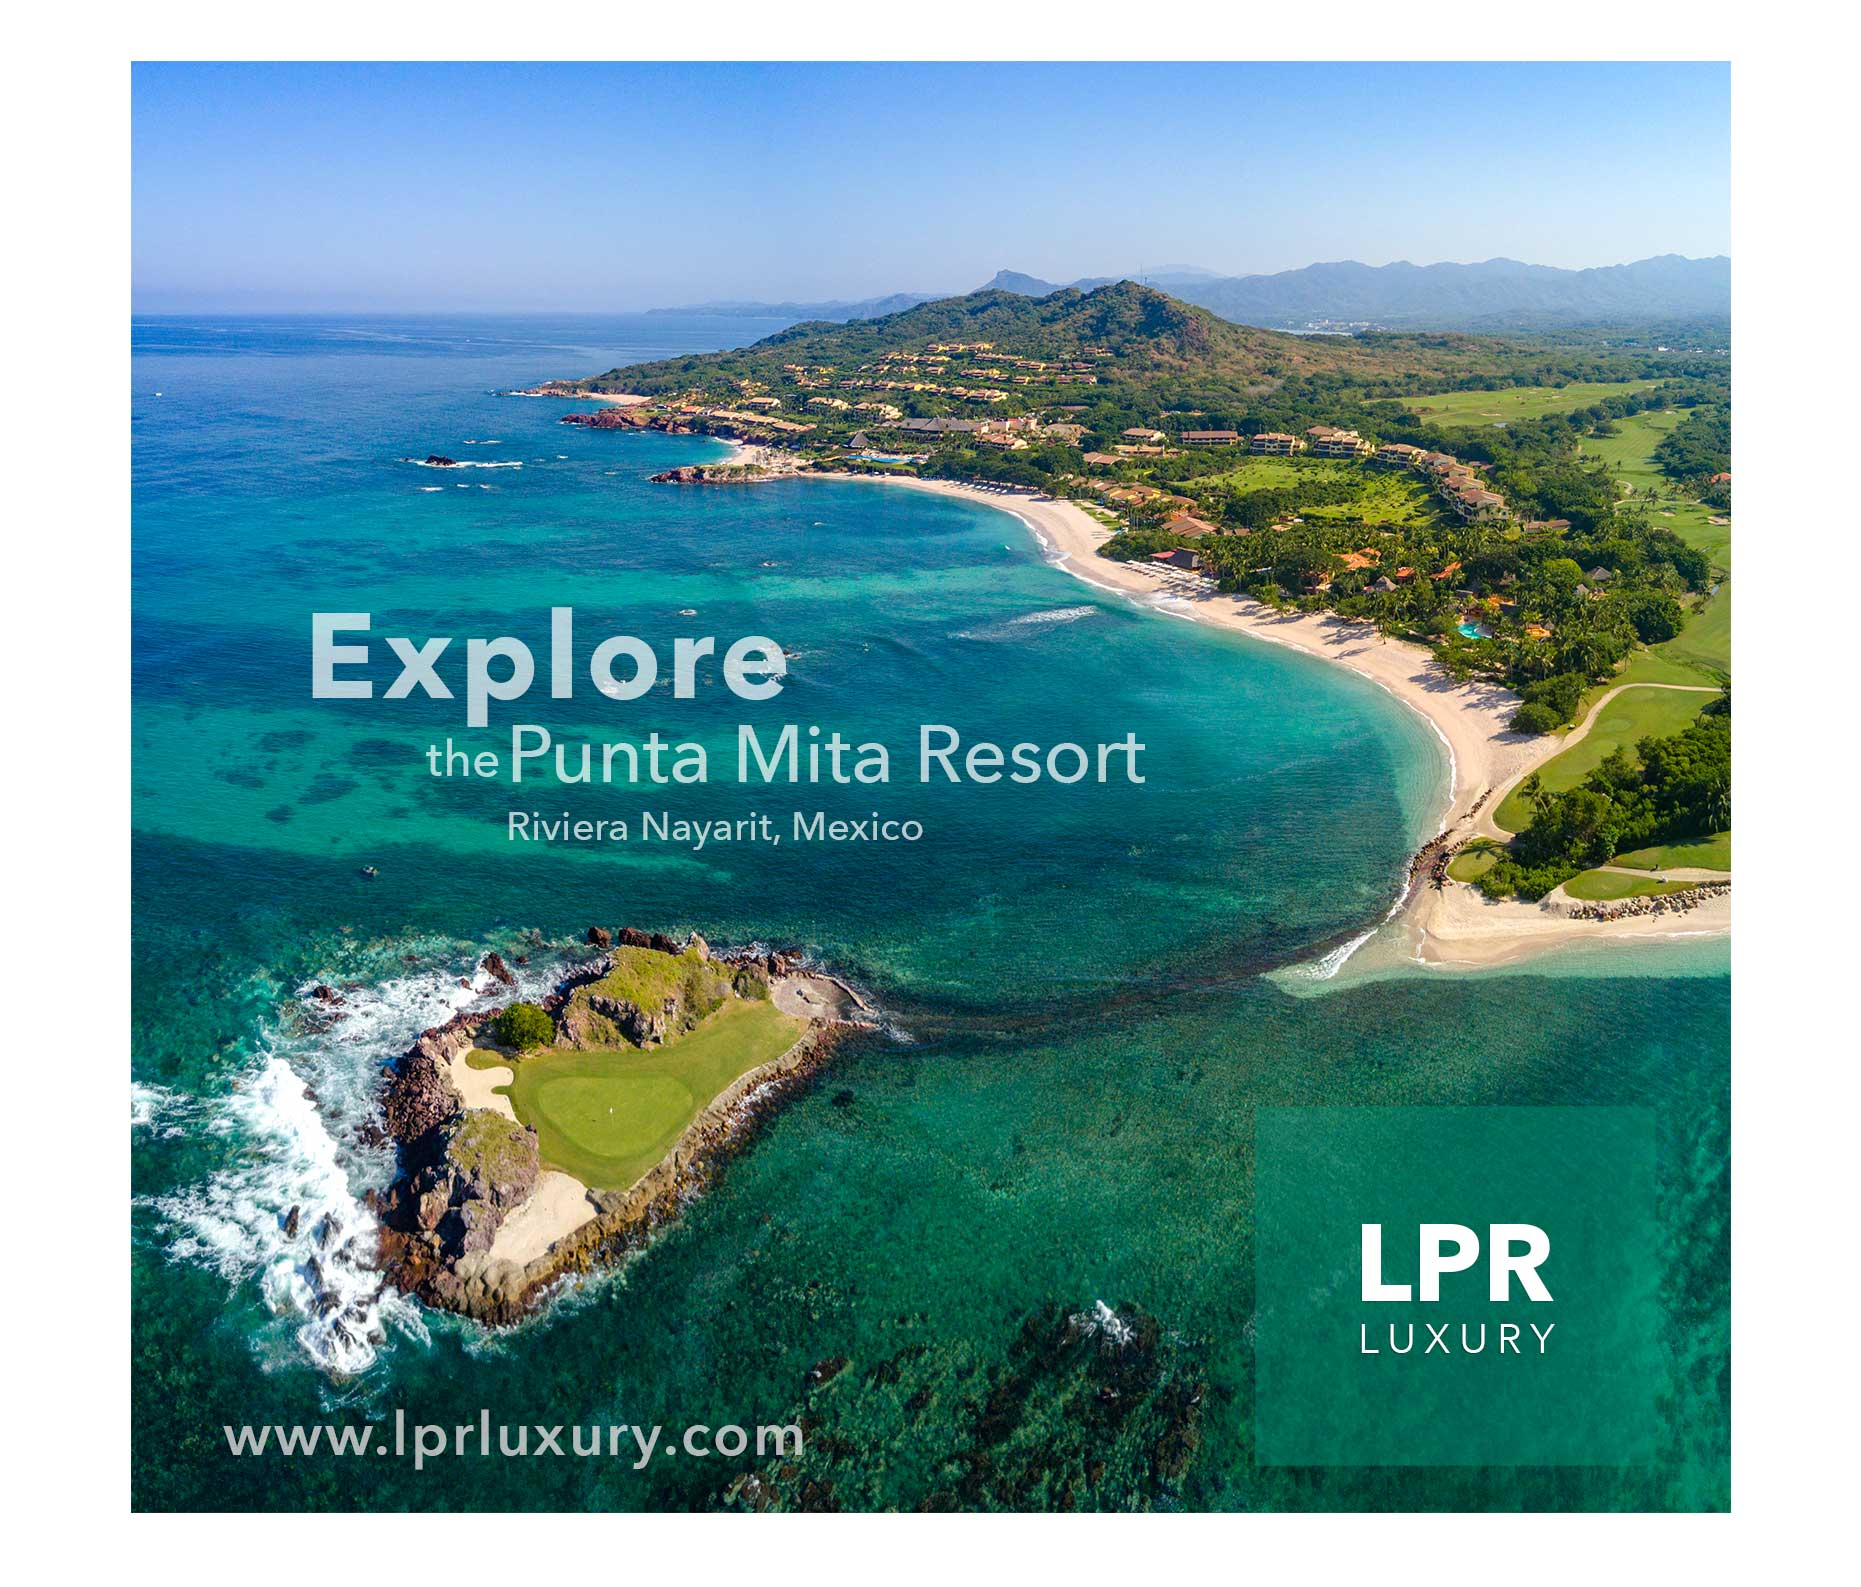 Explore the Punta Mita Resort - North Shore Puerto Vallarta luxury real estate and vacation rentals